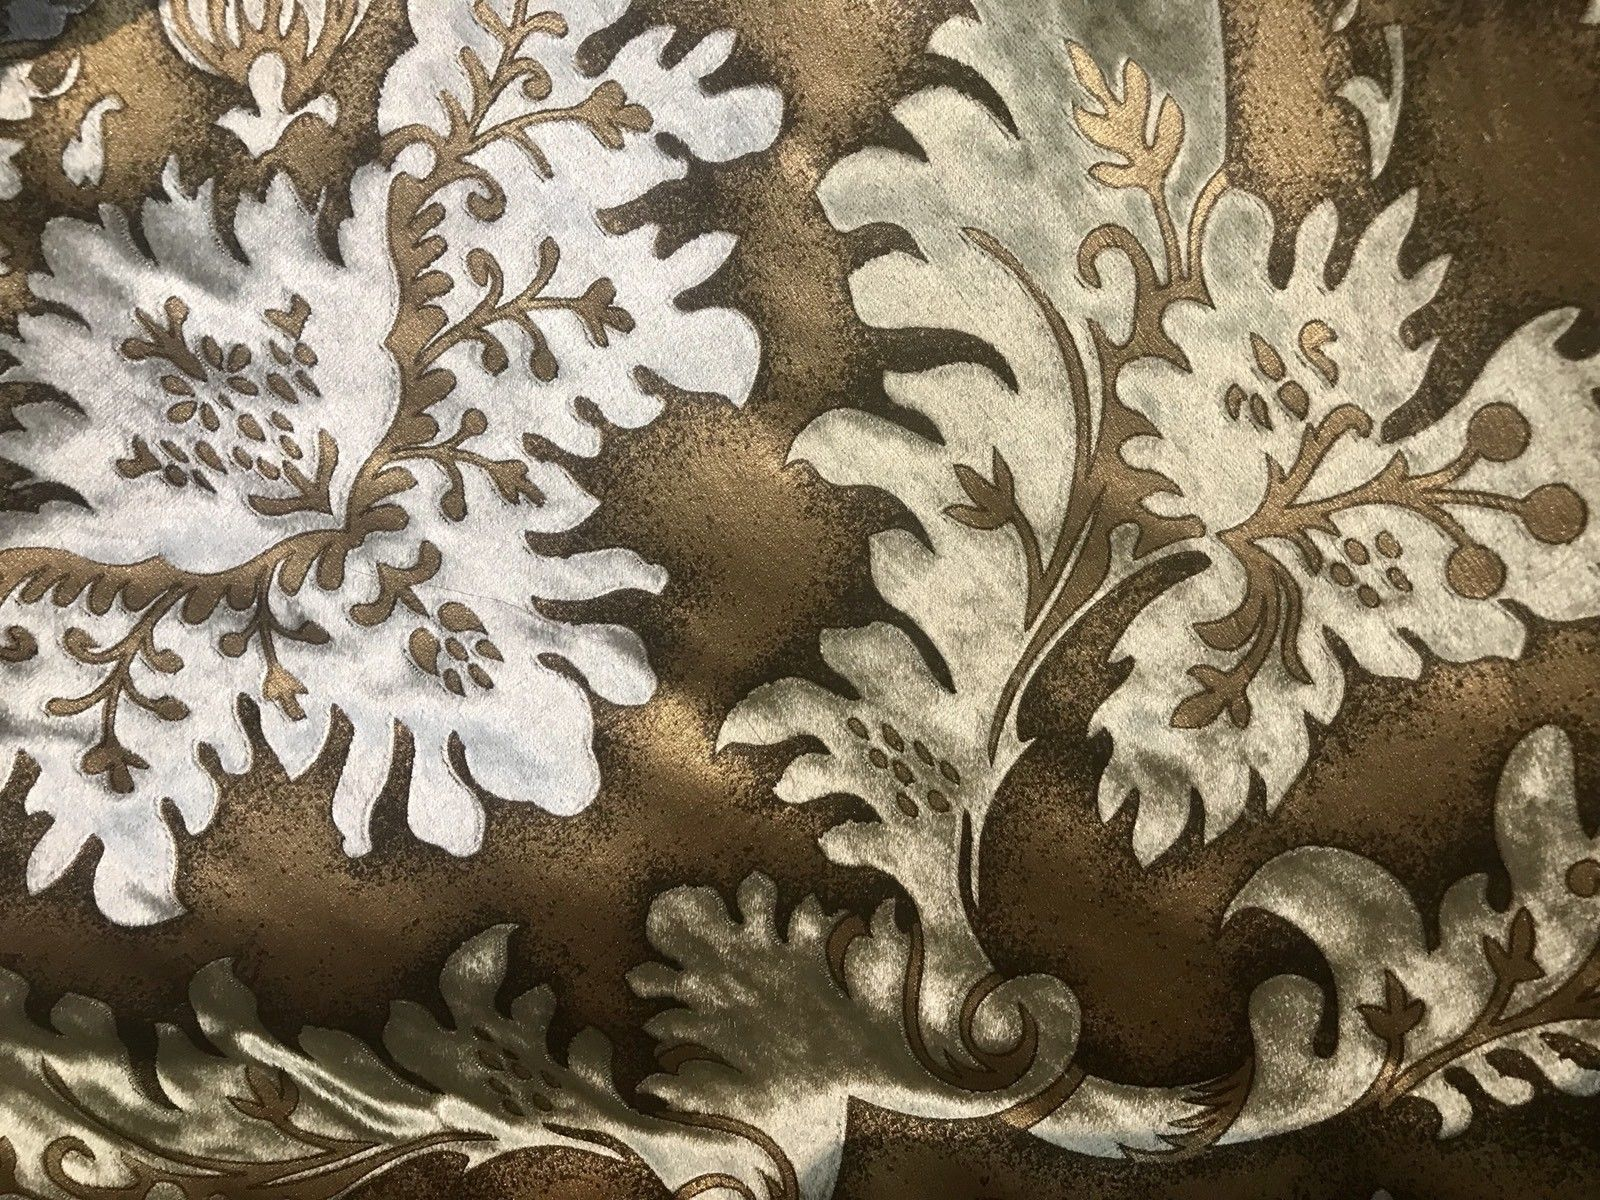 Designer Burnout Damask Cut Velvet Fabric Metallic Gold & Beige Drapery - Fancy Styles Fabric Pierre Frey Lee Jofa